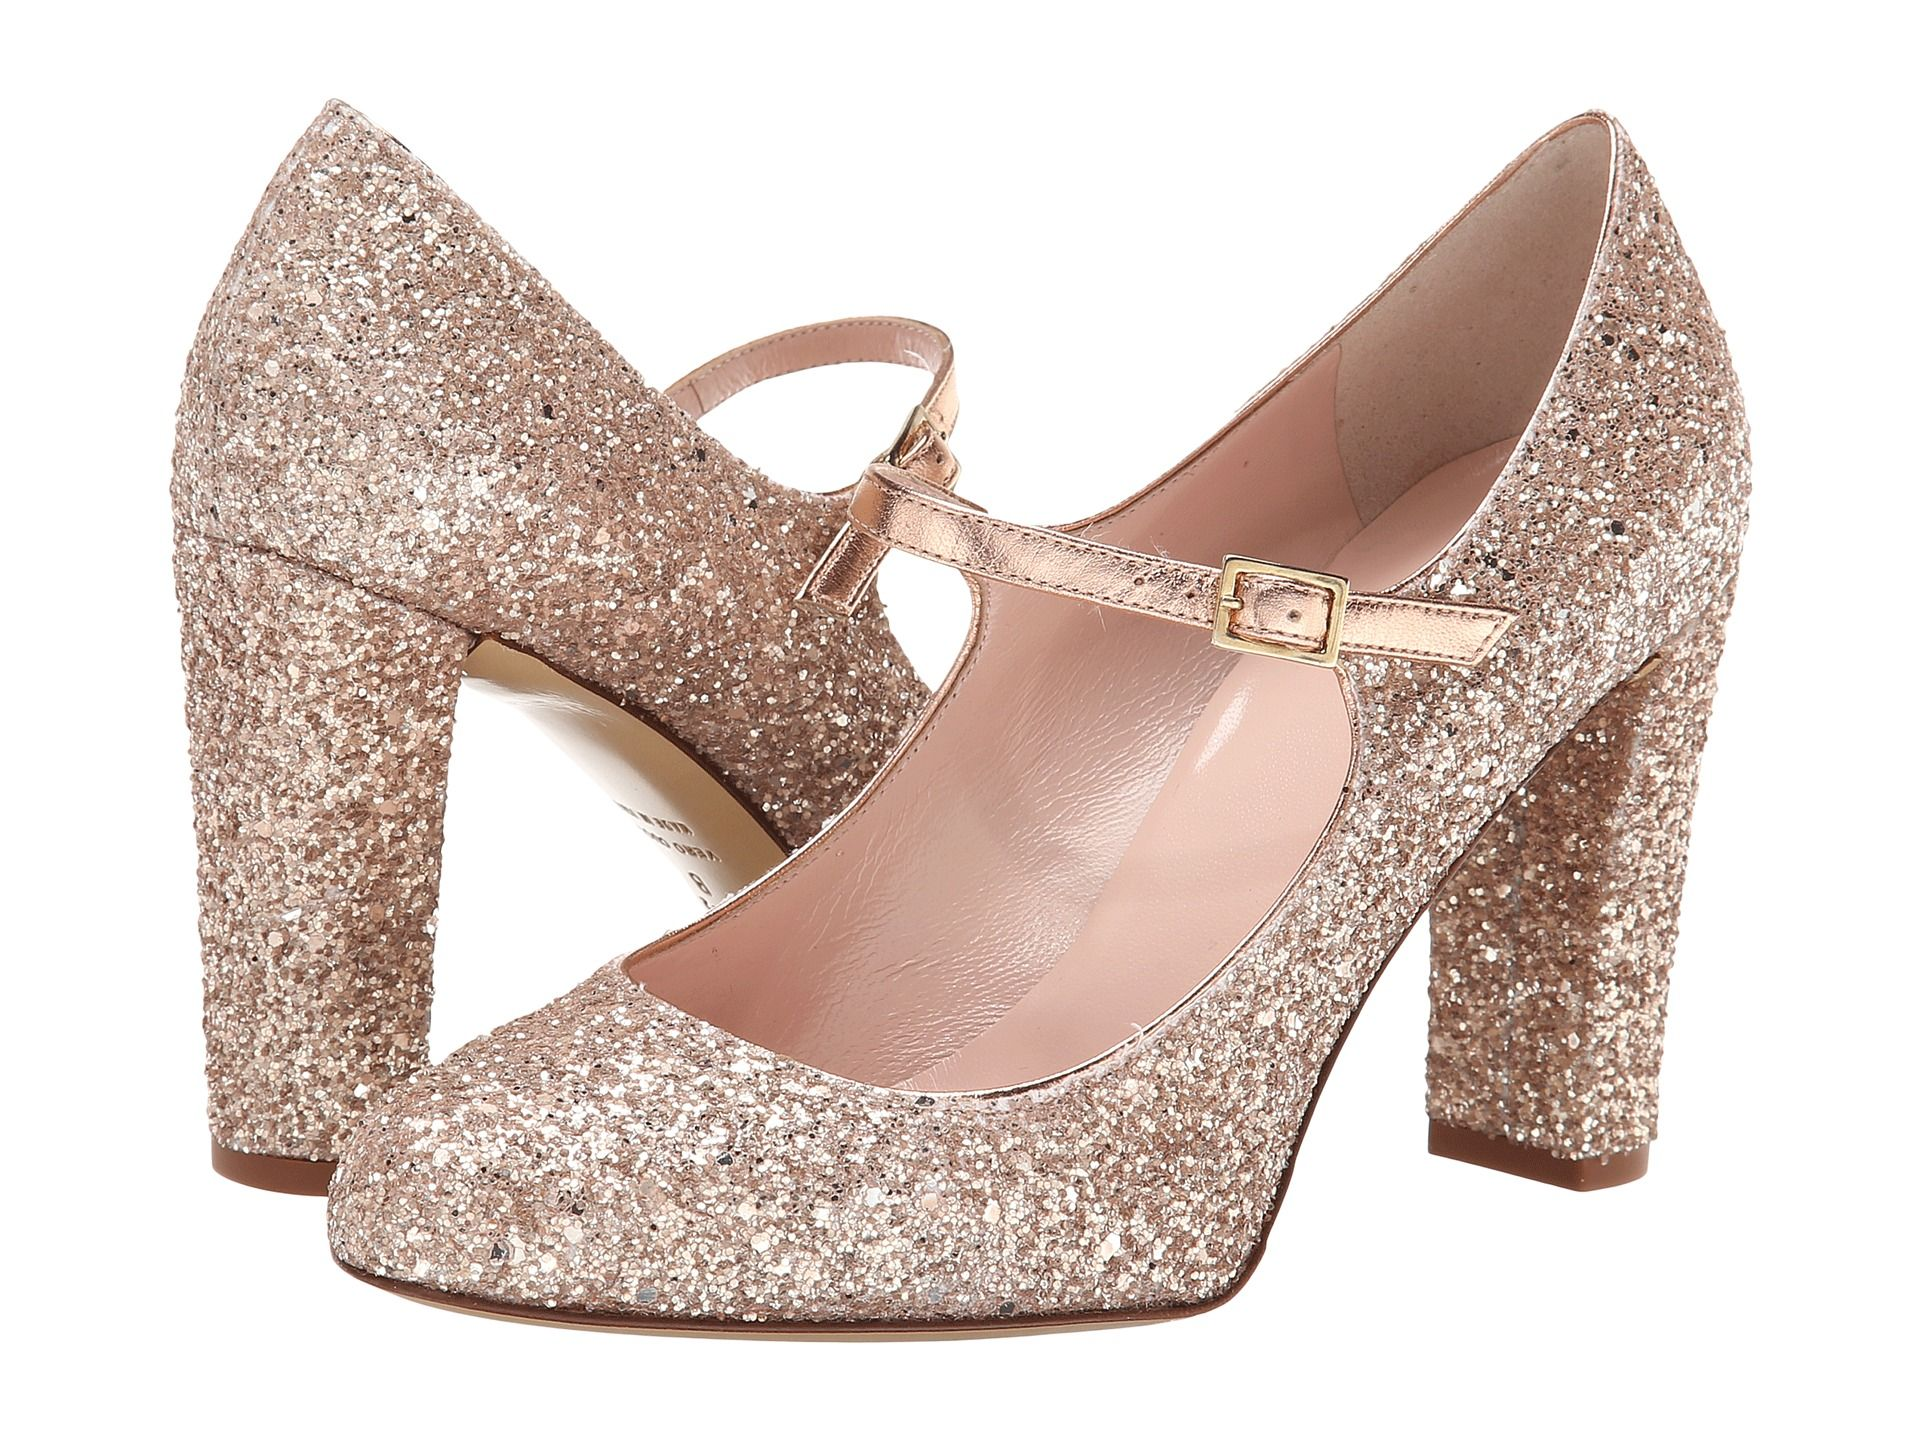 f6b33ea989d Kate Spade New York Angelique Rose Gold Glitter Rose Gold Glitter Heel -  Zappos Couture  350.00